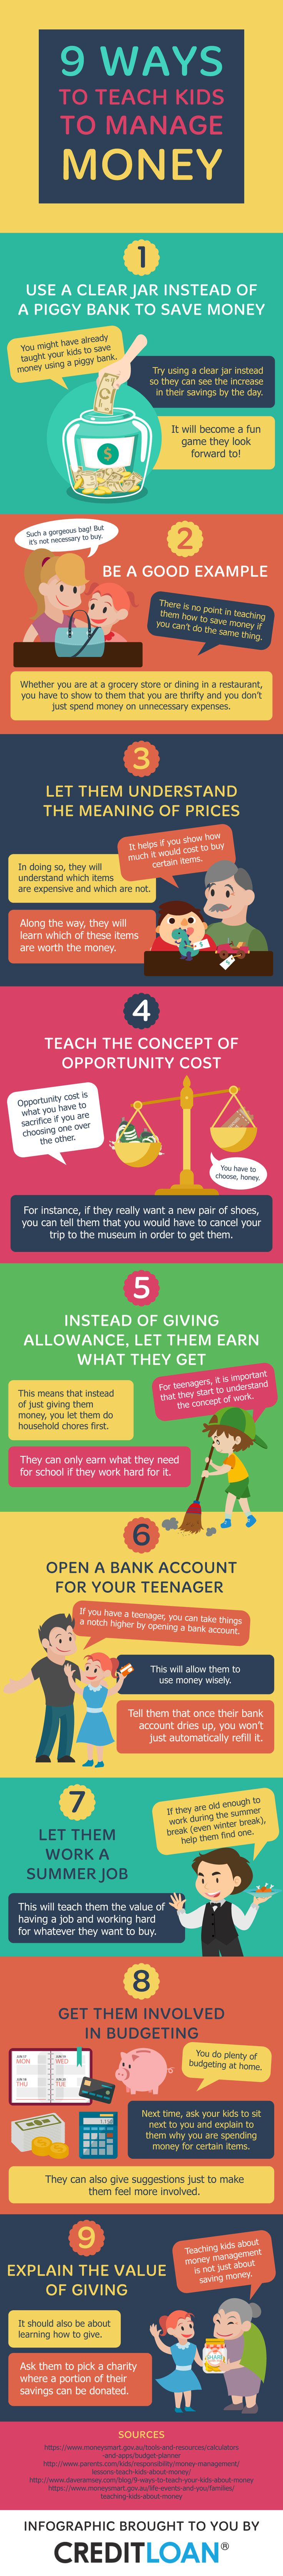 9 ways to help teach kids about money in positive, hands on examples.